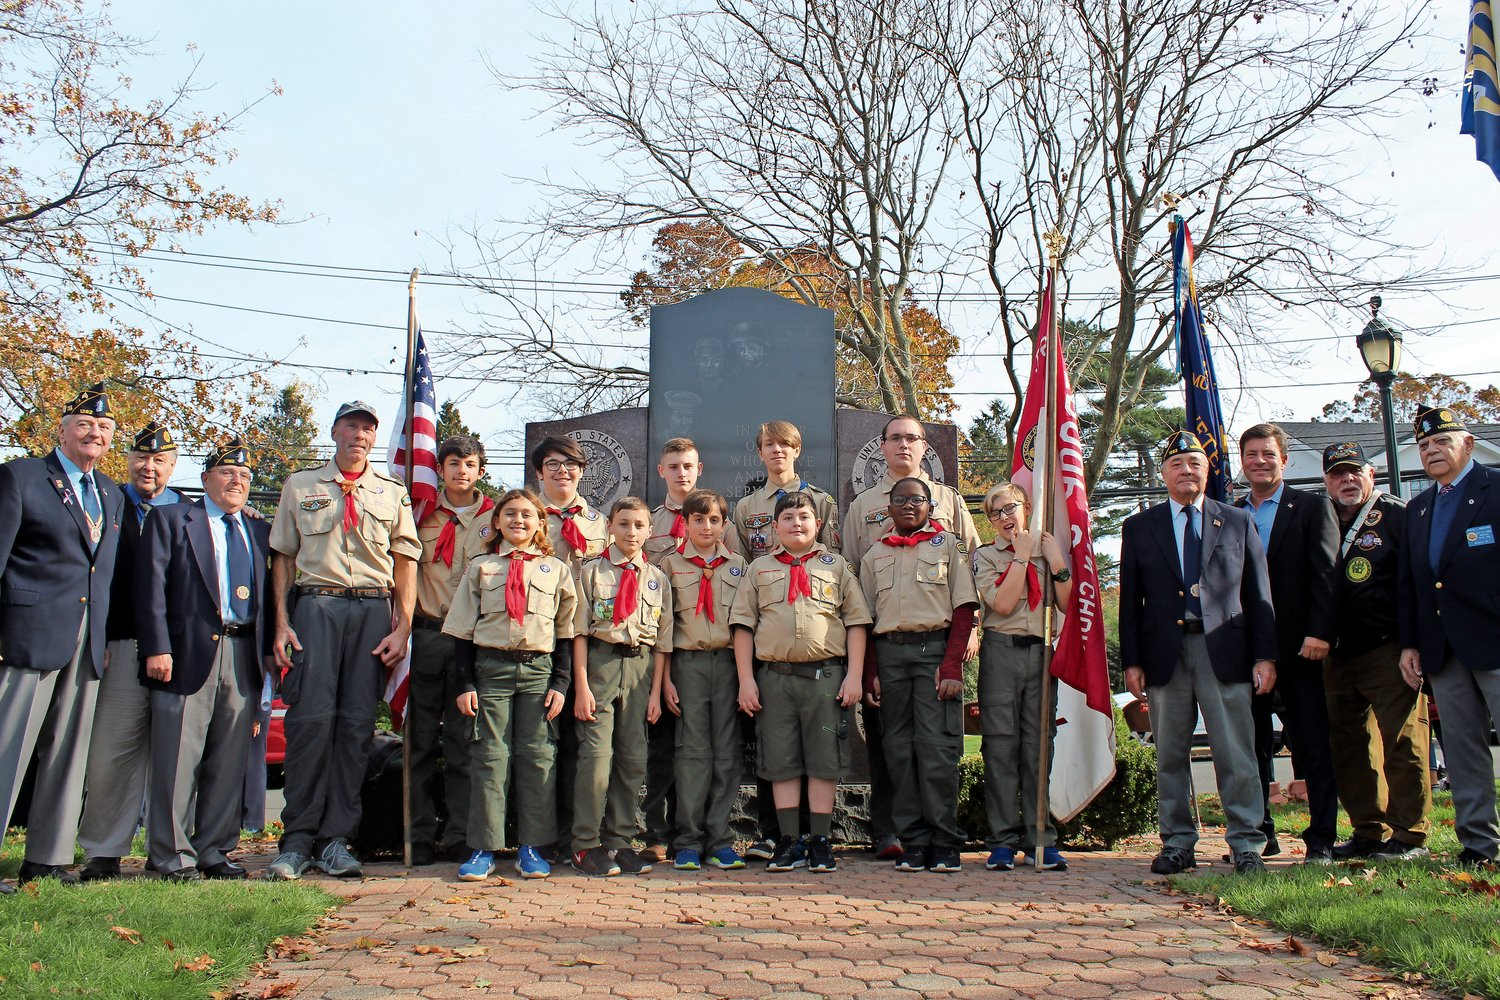 Members of Boy Scout Troop 351 acted as flag bearers during American Legion Post 1282's annual Veterans Day ceremony at Merrick's Veterans Memorial Park.